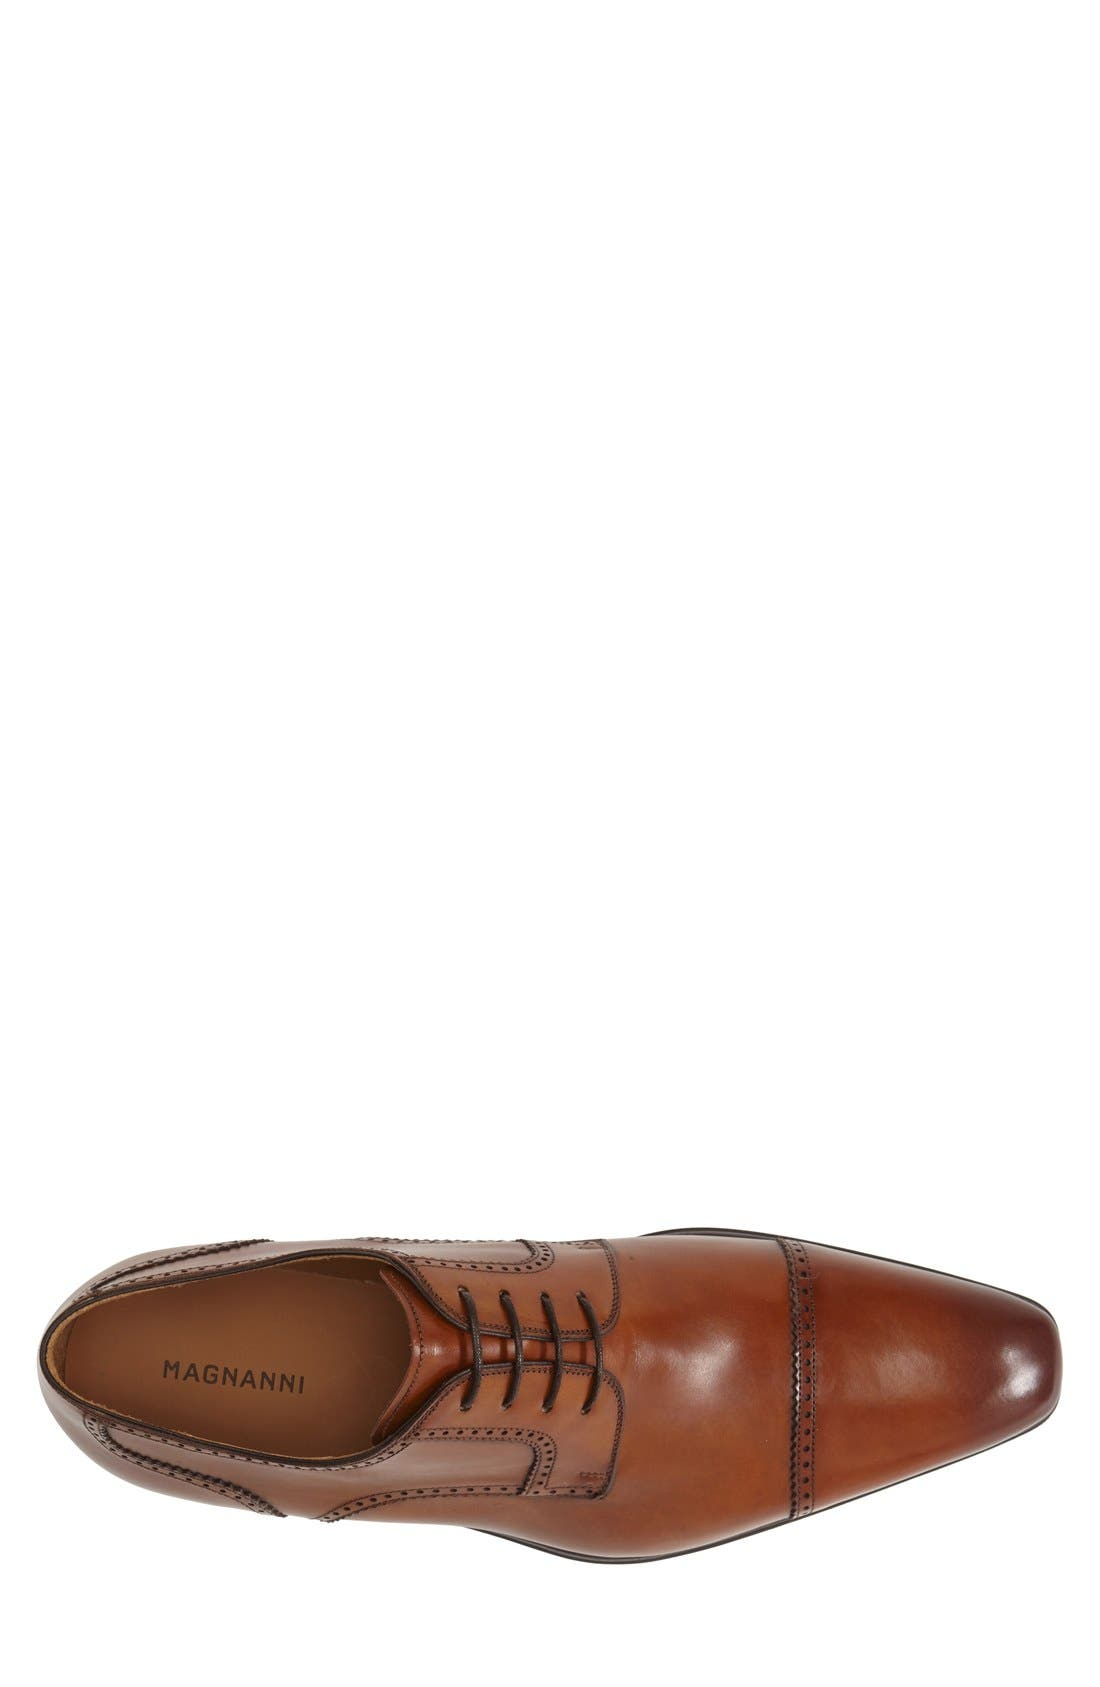 MAGNANNI, 'Carlito' Cap Toe Derby, Alternate thumbnail 3, color, 219